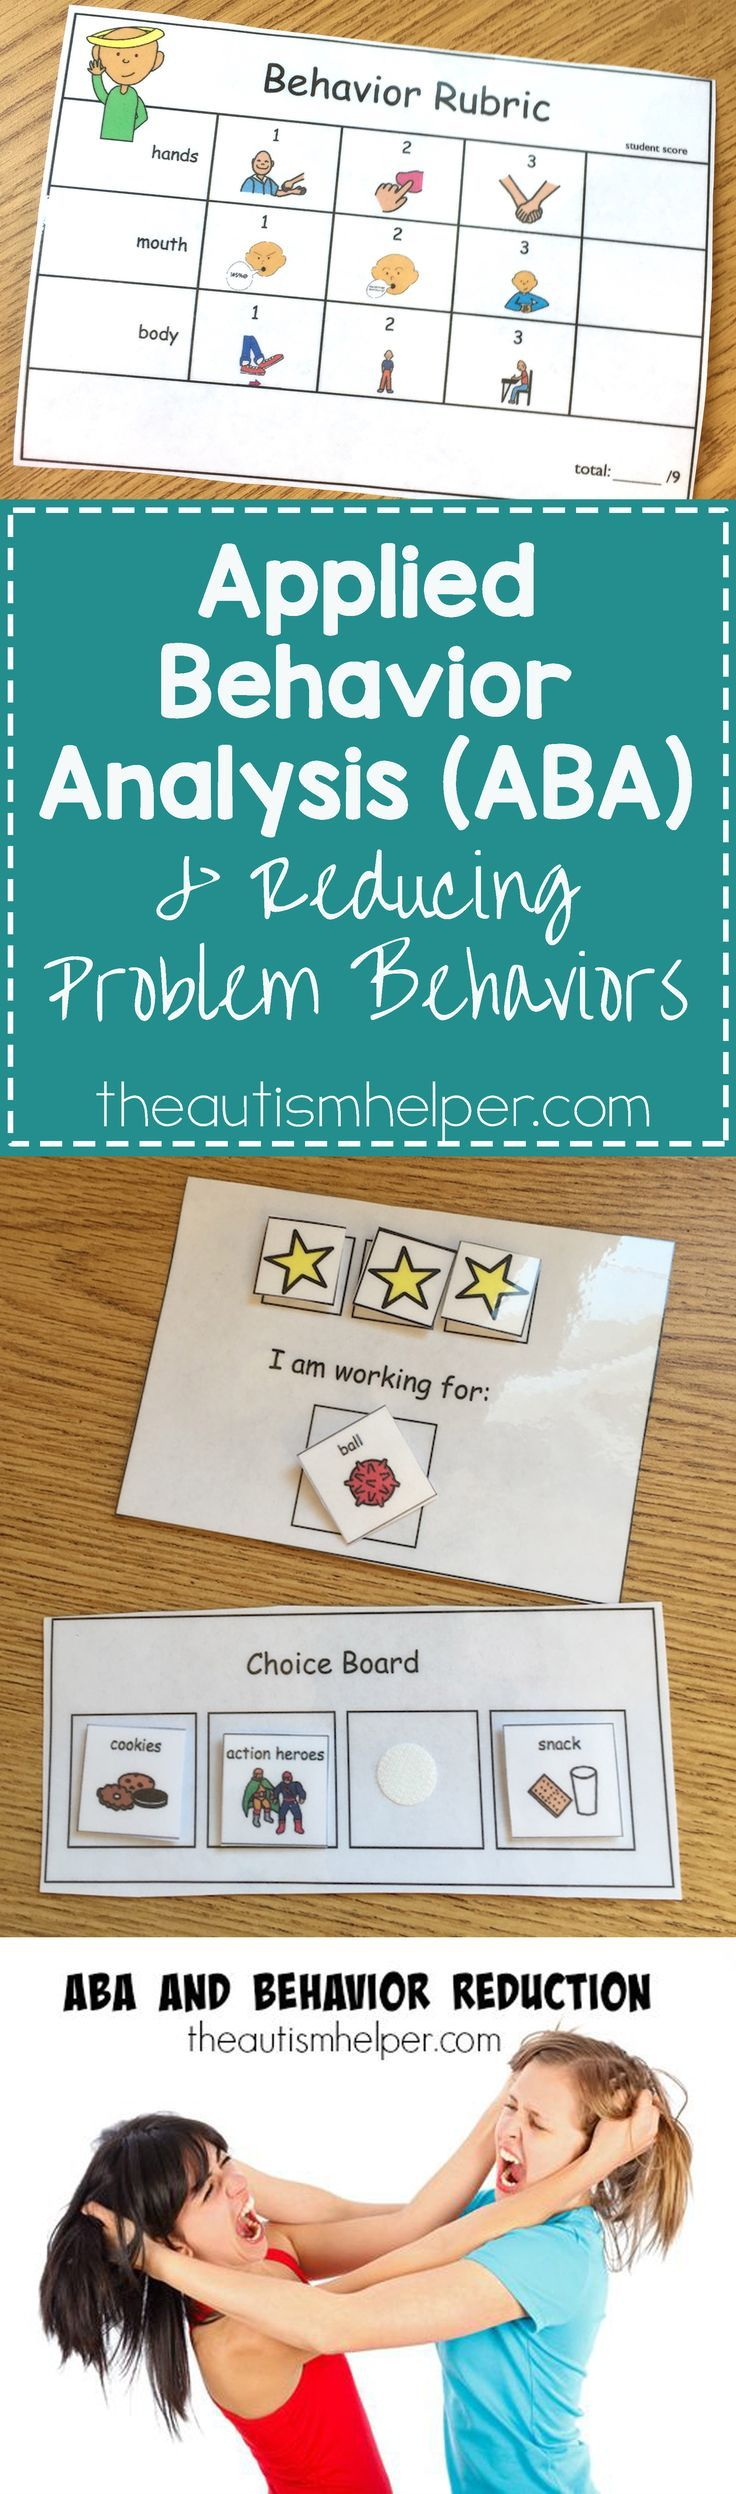 Applied Behavioral Analysis (ABA) strategies breakdown on the blog! From http://theautismhelper.com #theautismhelper